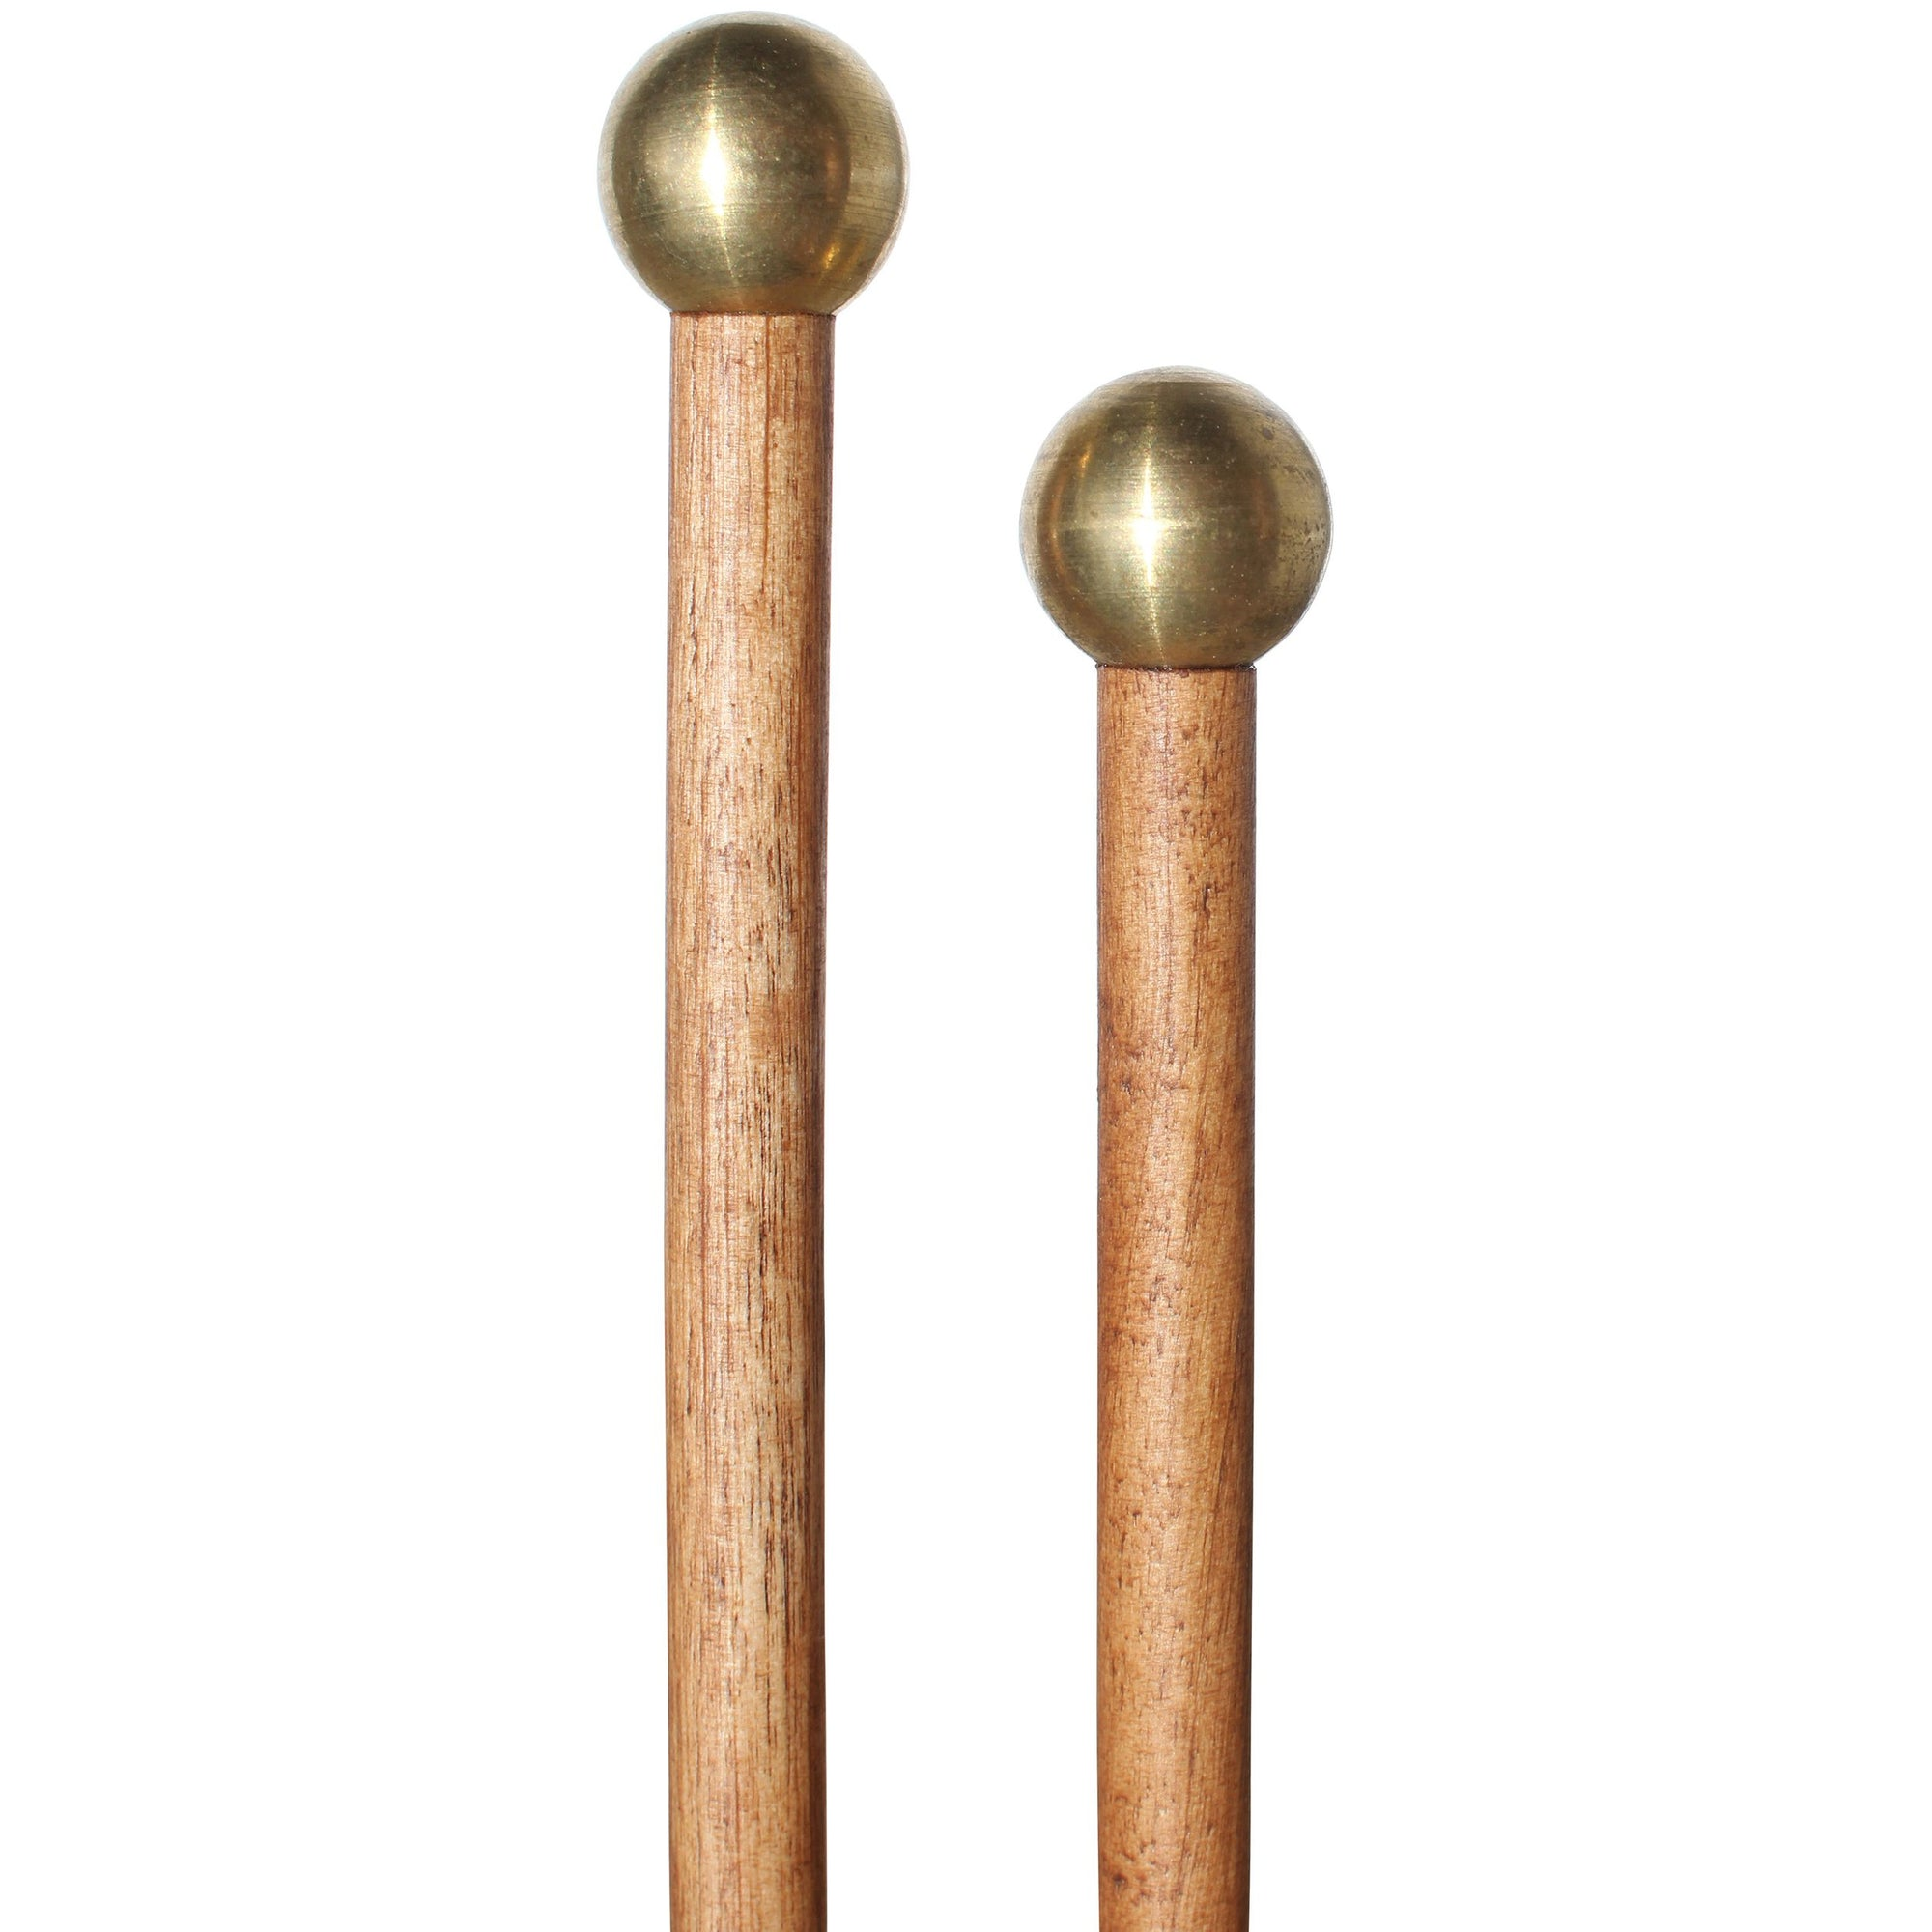 Timber Drum - Hard Brass Bell Mallets-Percussion-Timber Drum-Music Elements